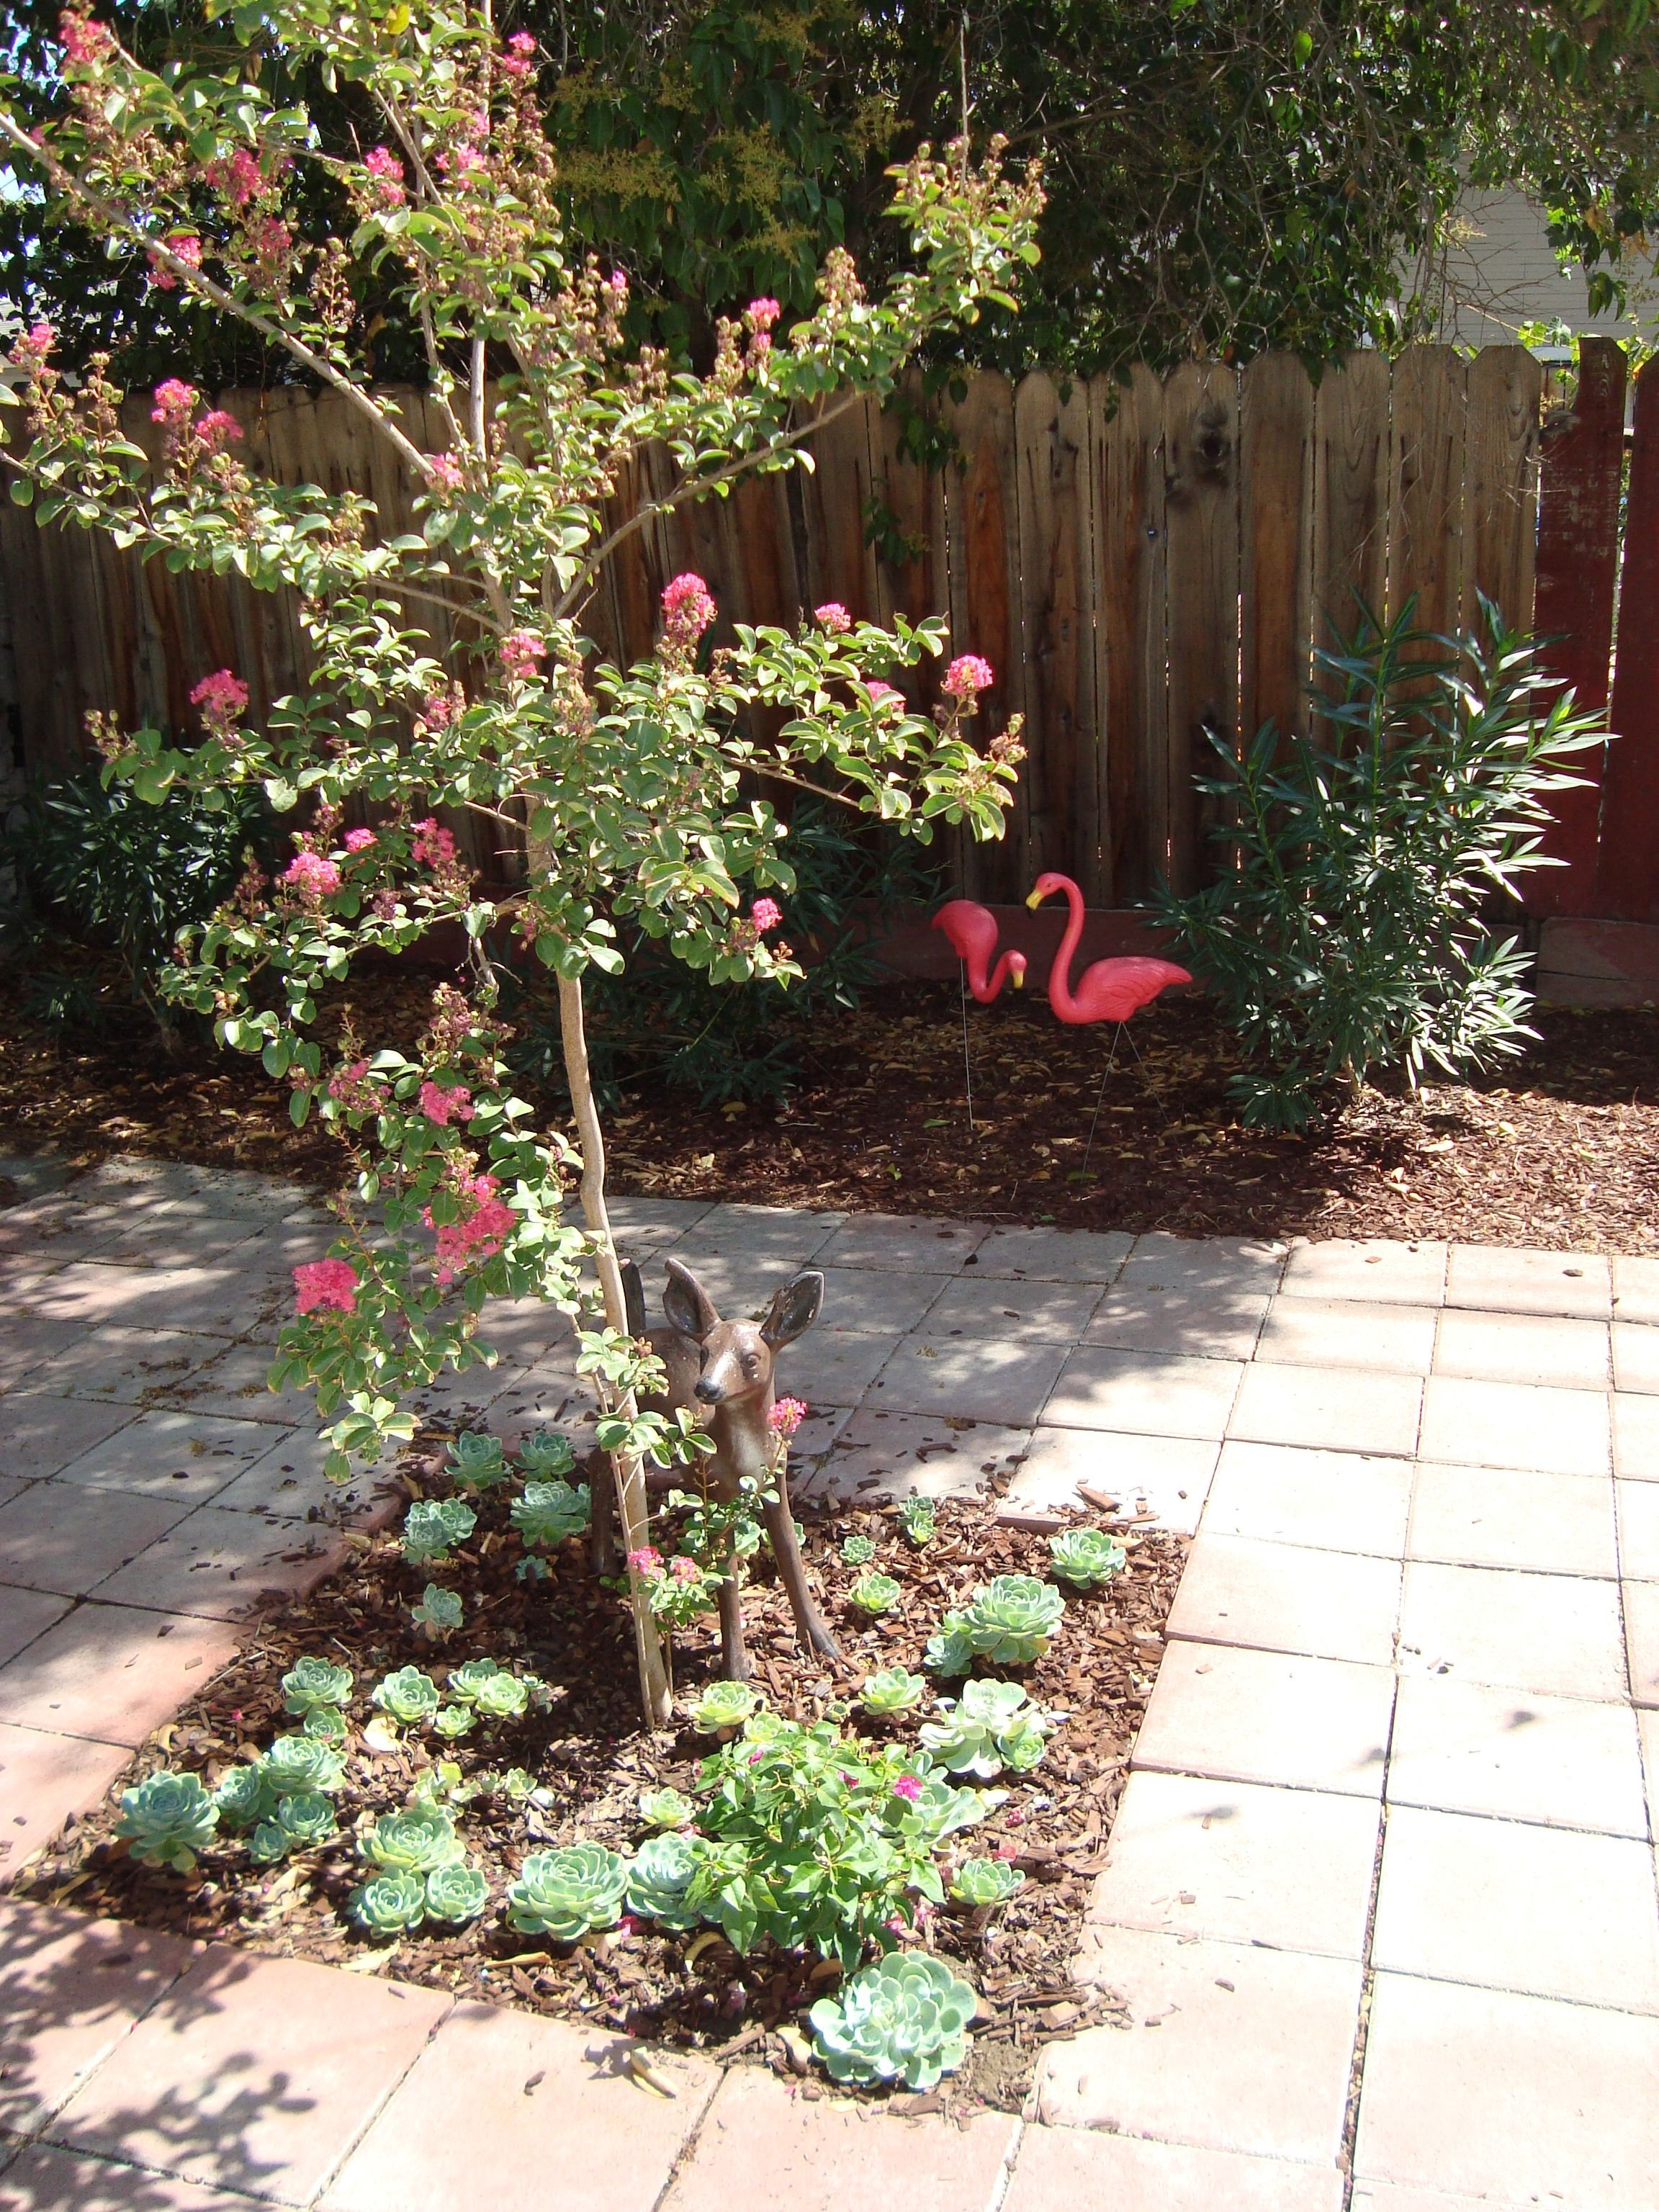 Crepe myrtle, oleander, and pink flamingos!